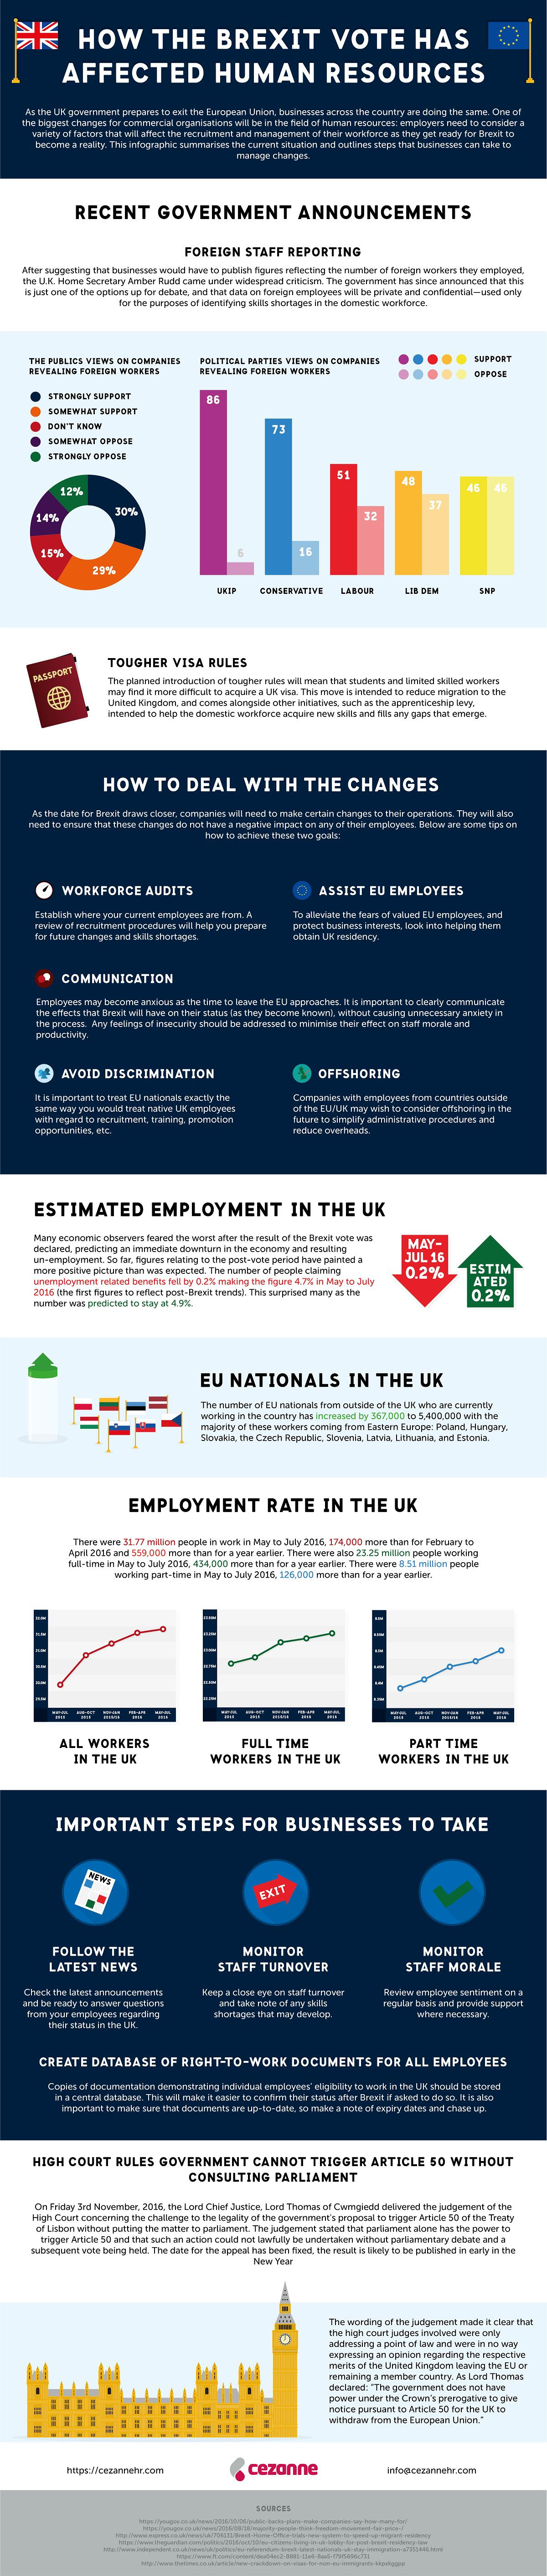 How The Brexit Vote Has Affected Human Resources